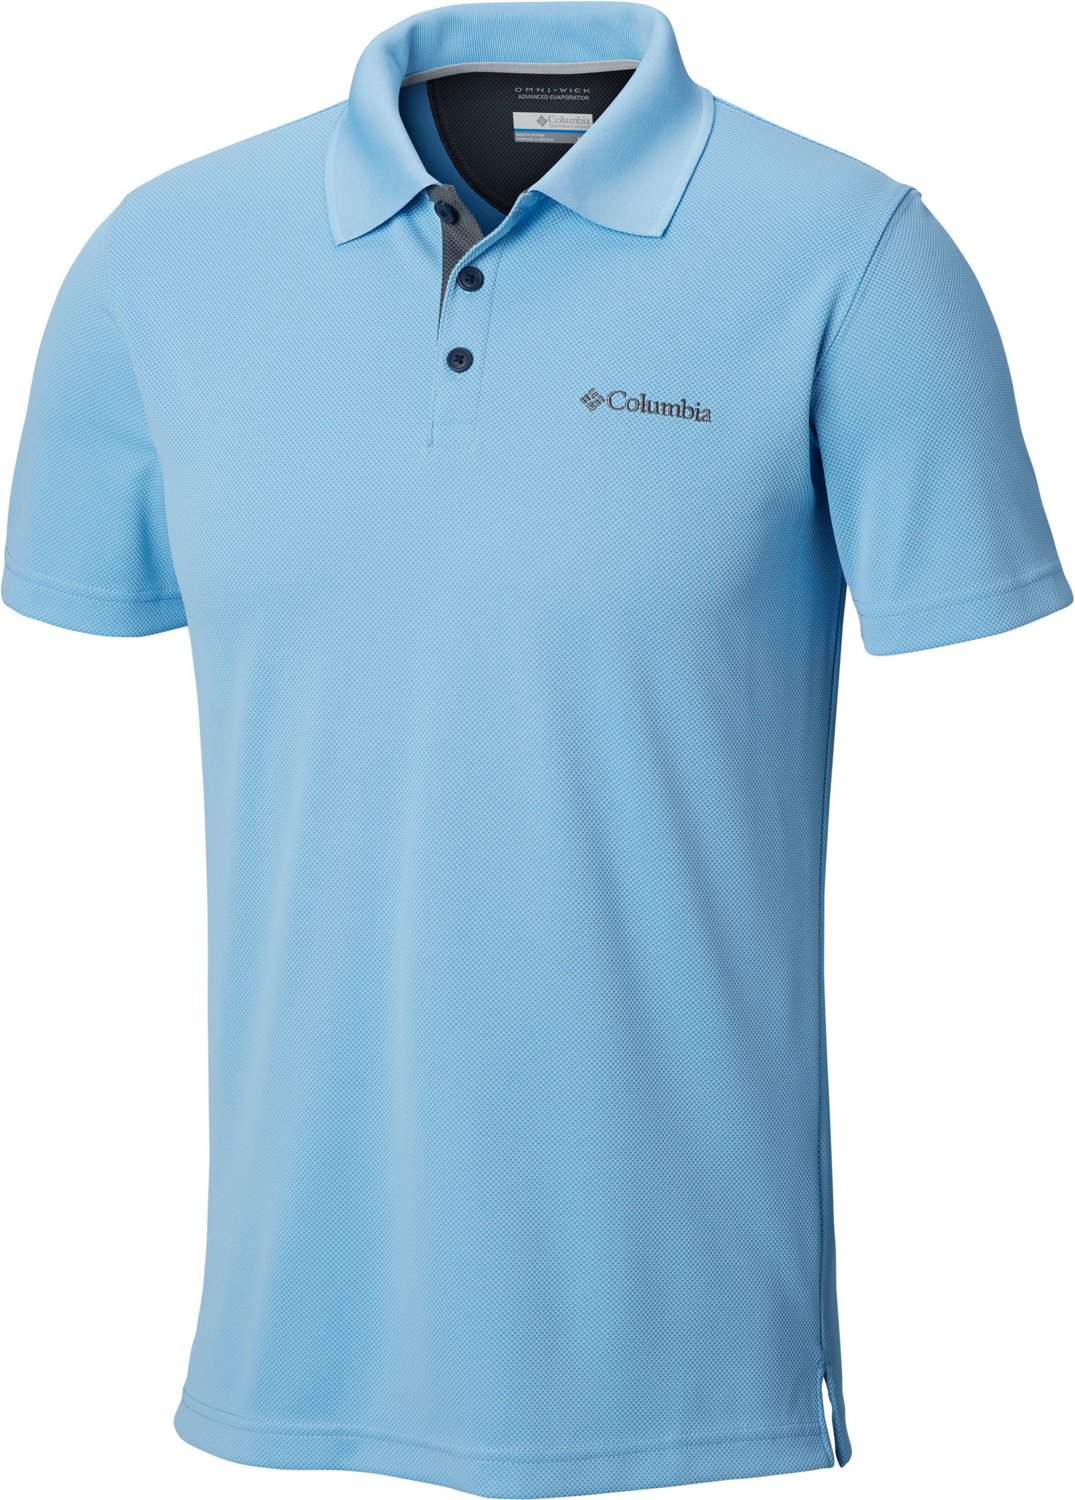 8dbb0e52071 Columbia Sportswear Men's Utilizer Polo Shirt | Academy